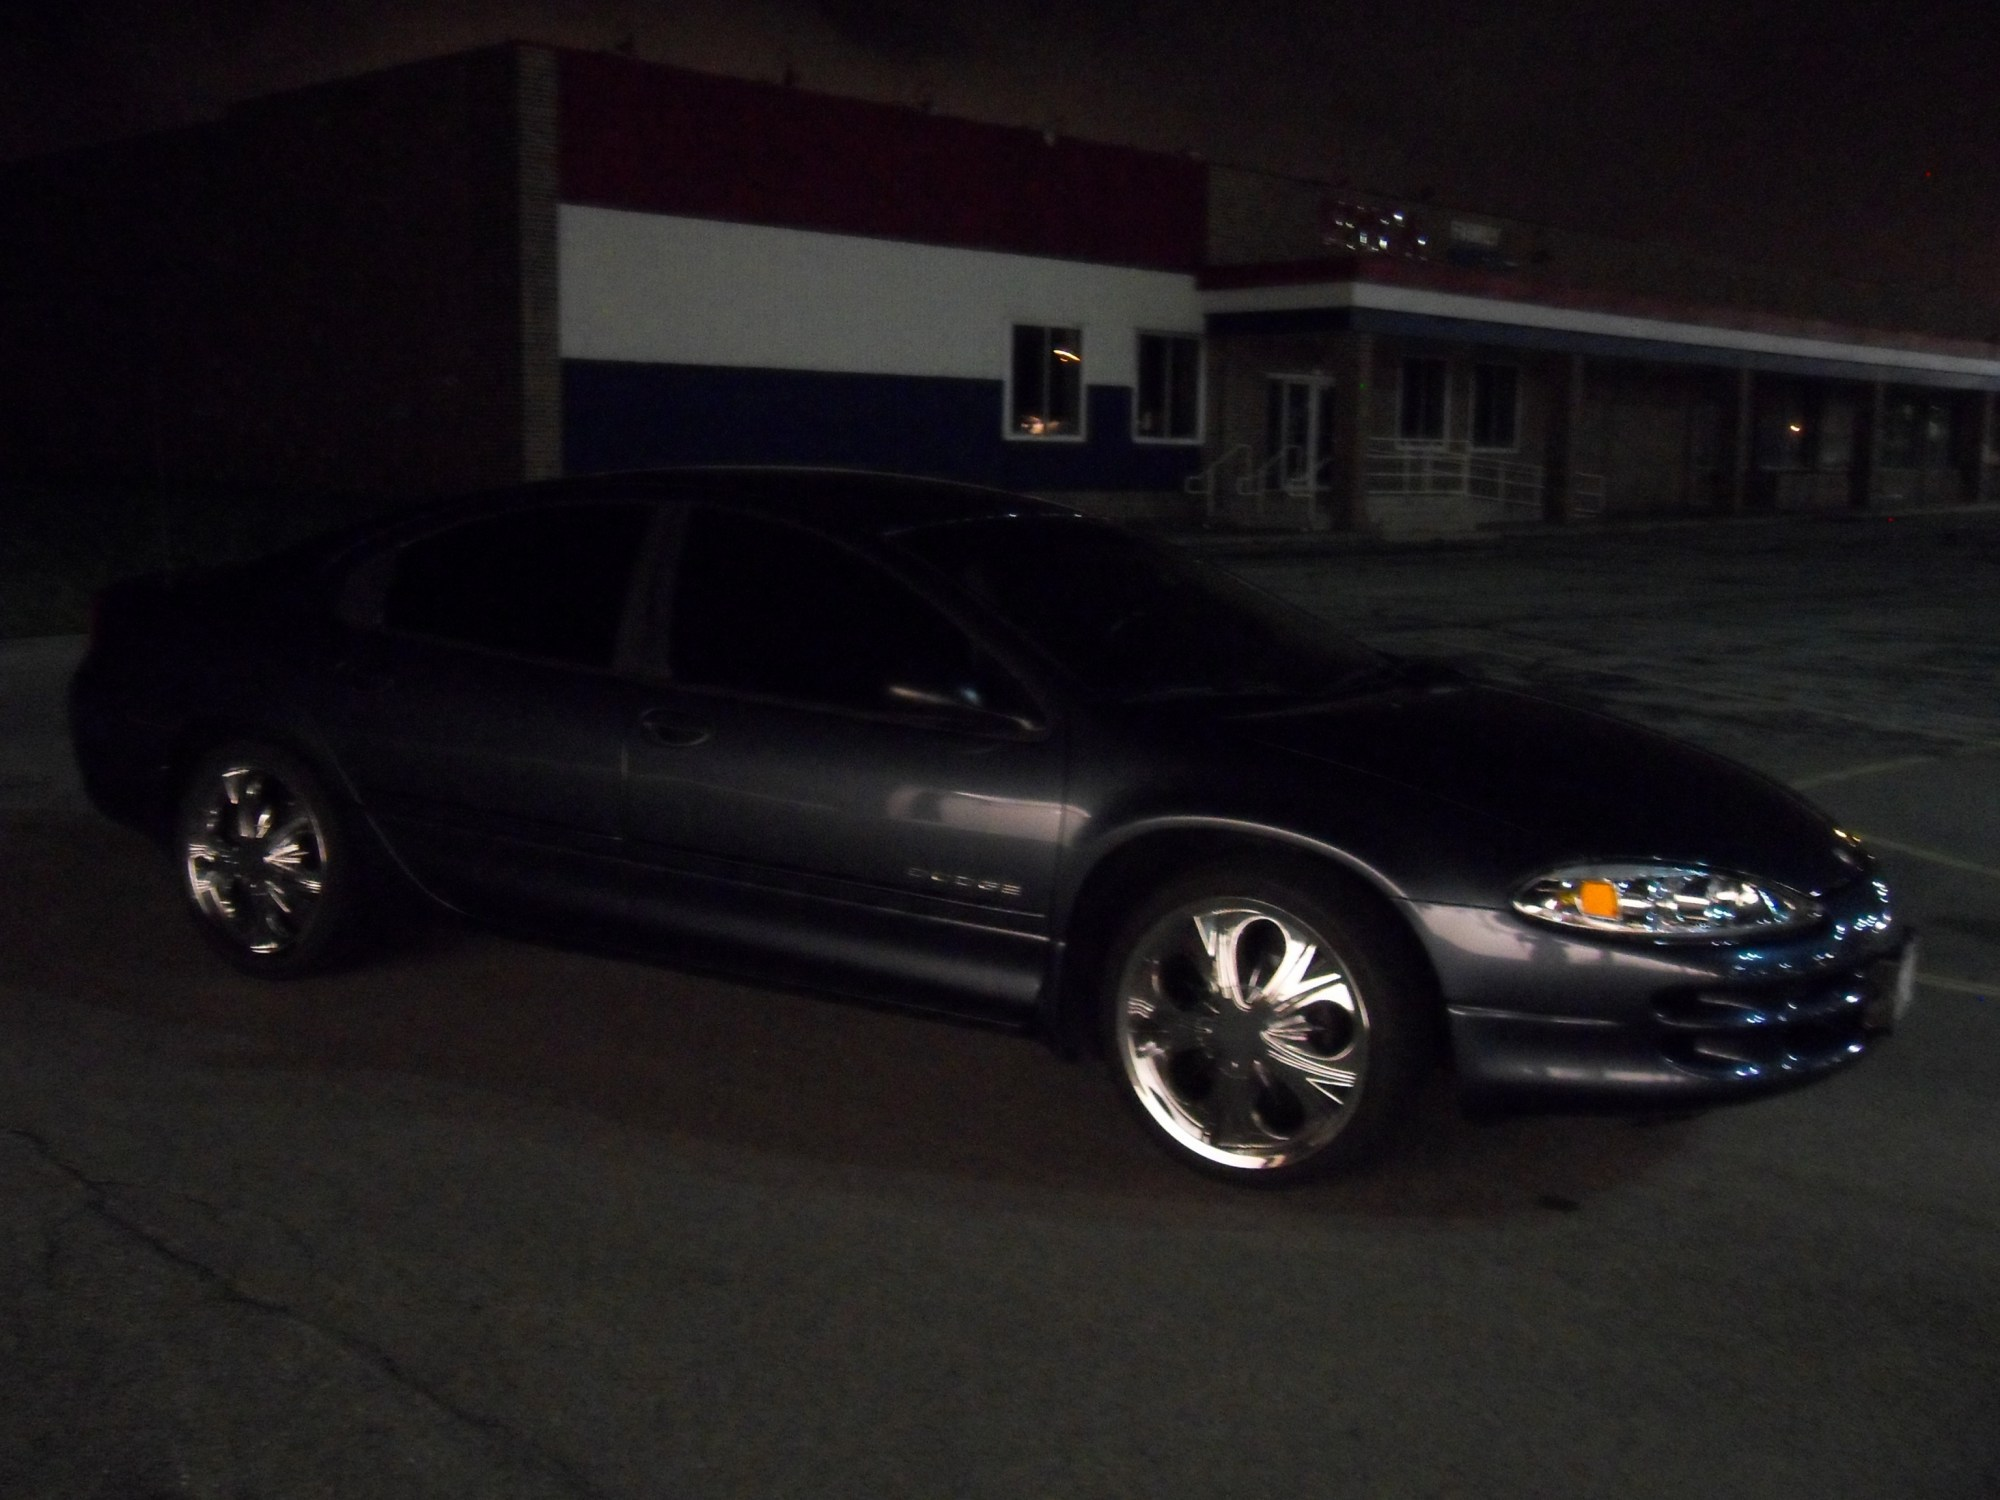 hight resolution of jjstayfly920 2000 dodge intrepid 38766314004 original